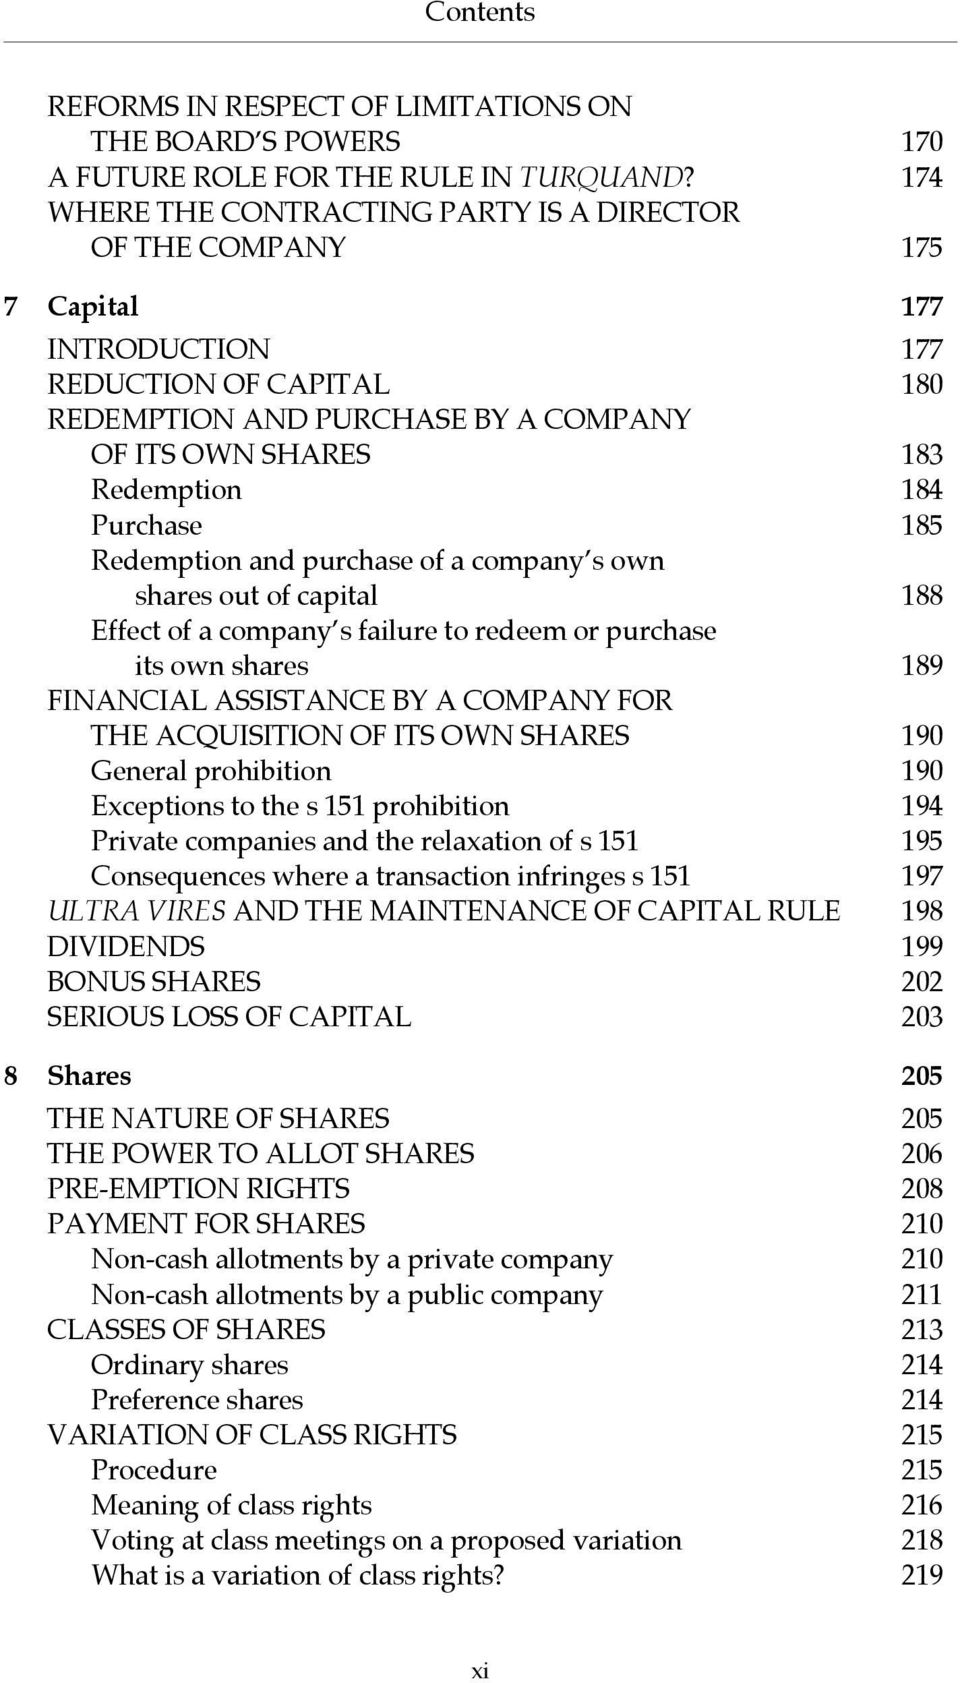 Purchase 185 Redemption and purchase of a company s own shares out of capital 188 Effect of a company s failure to redeem or purchase its own shares 189 FINANCIAL ASSISTANCE BY A COMPANY FOR THE